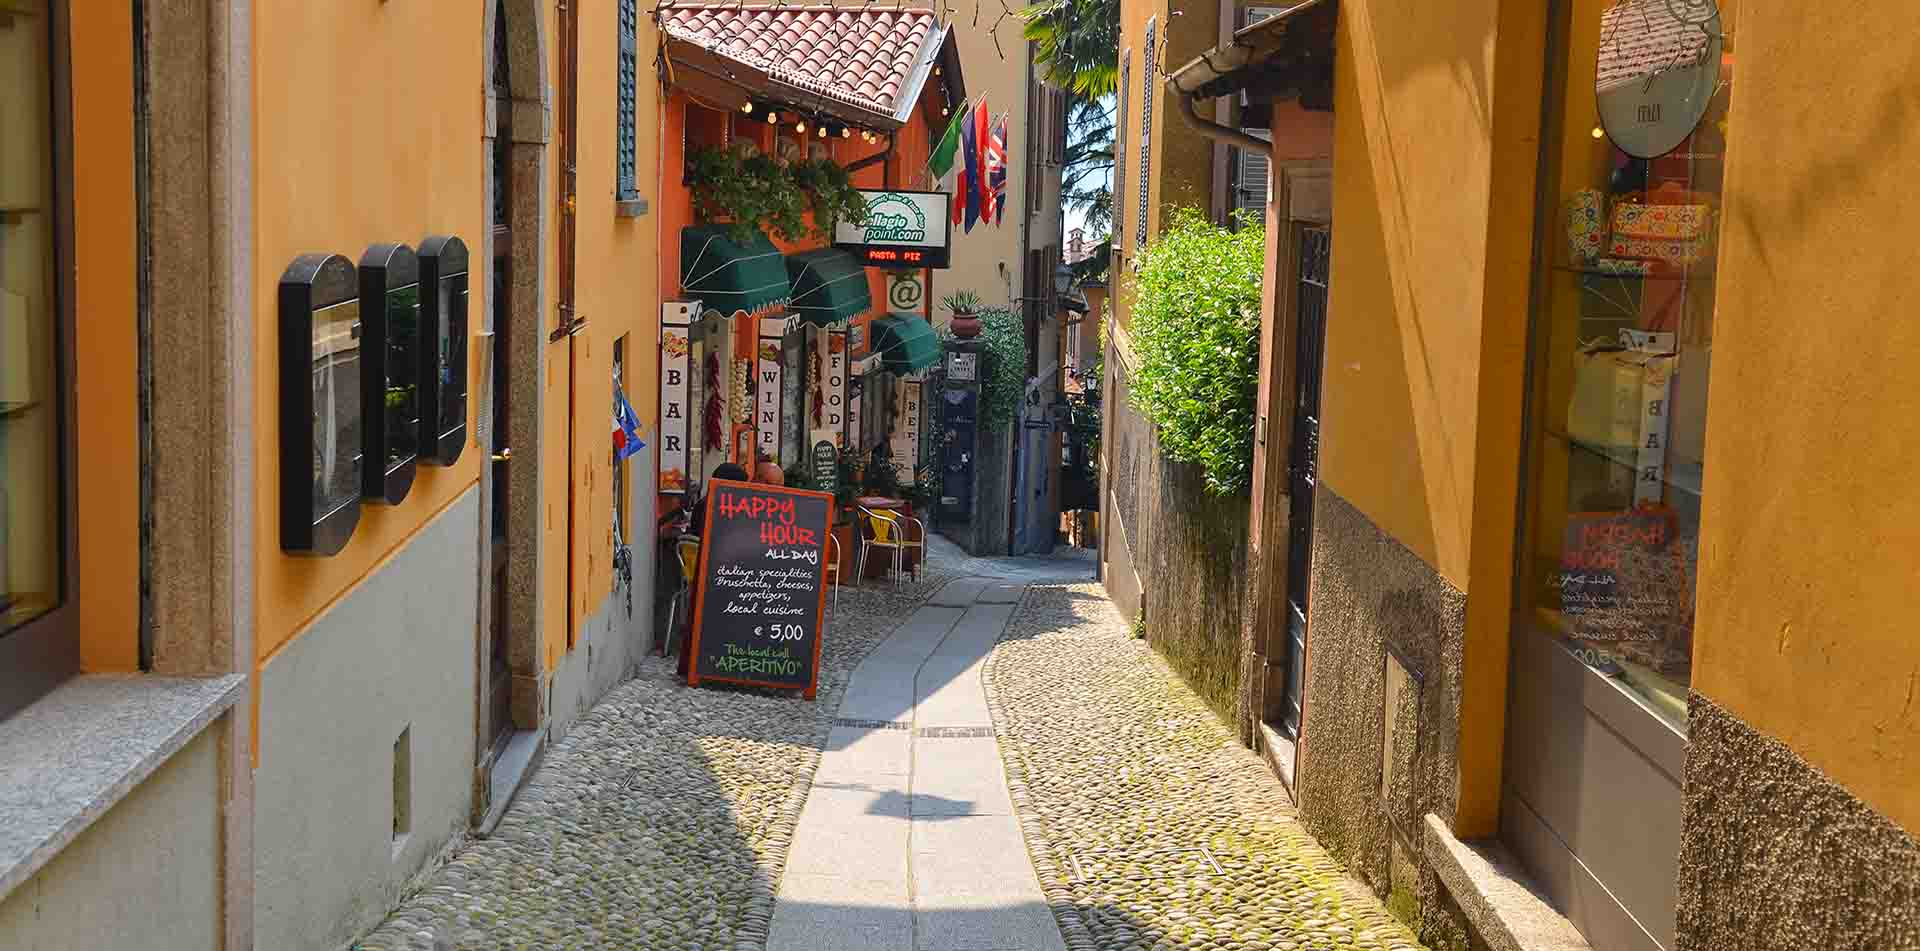 Europe Italy Lake Como Bellagio colorful buildings happy hour sign narrow cobblestone street - luxury vacation destinations